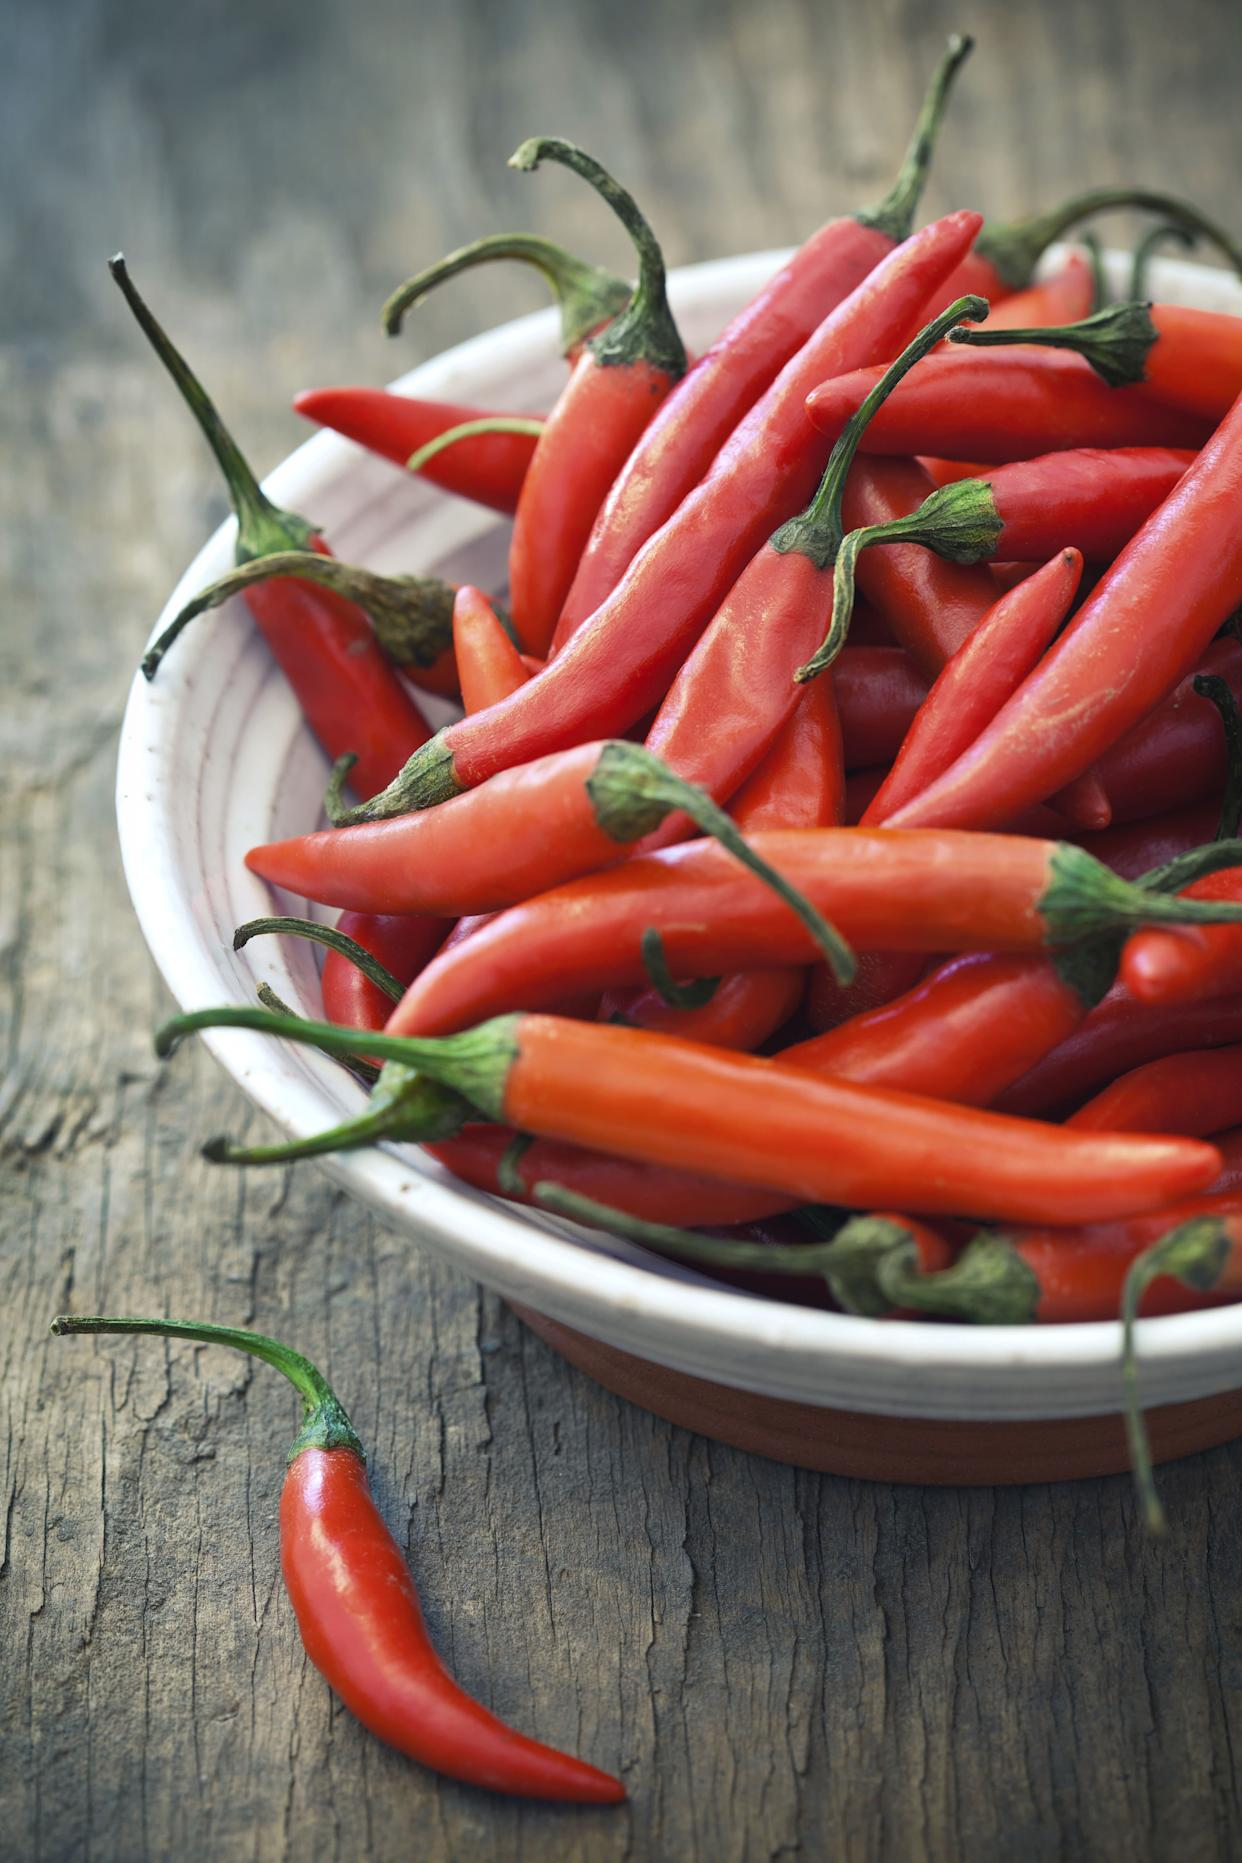 Chili peppers are hot, yes, but does your mouth feeling like it's on fire make you want to kiss? What about a runny nose -- does that turn you on? Maybe you like it when your partner's eyes water and his/her face sweats? We thought not.